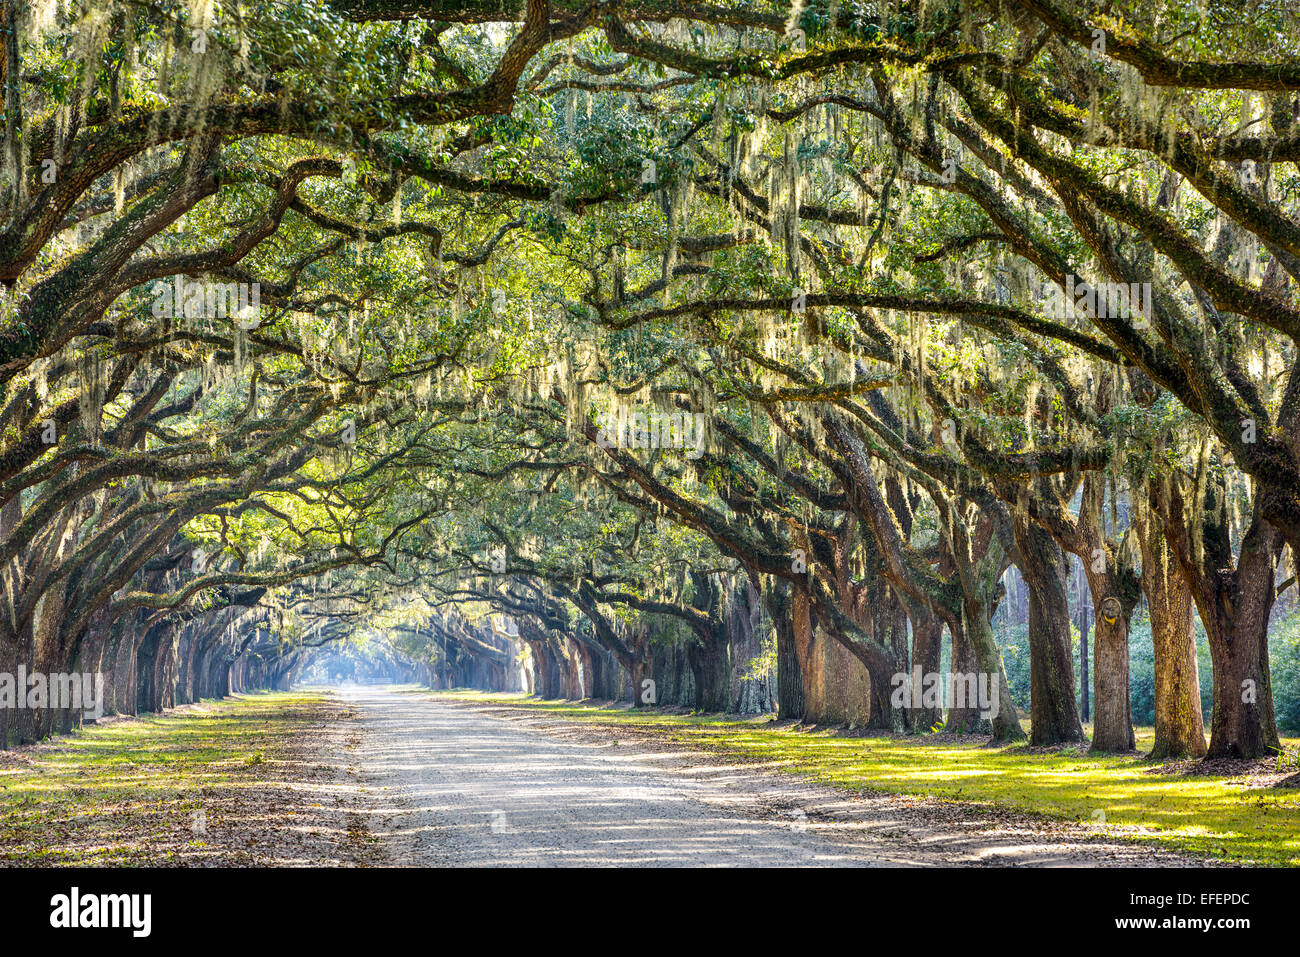 Savannah, Georgia, USA oak tree lined road at historic Wormsloe Plantation. Stock Photo